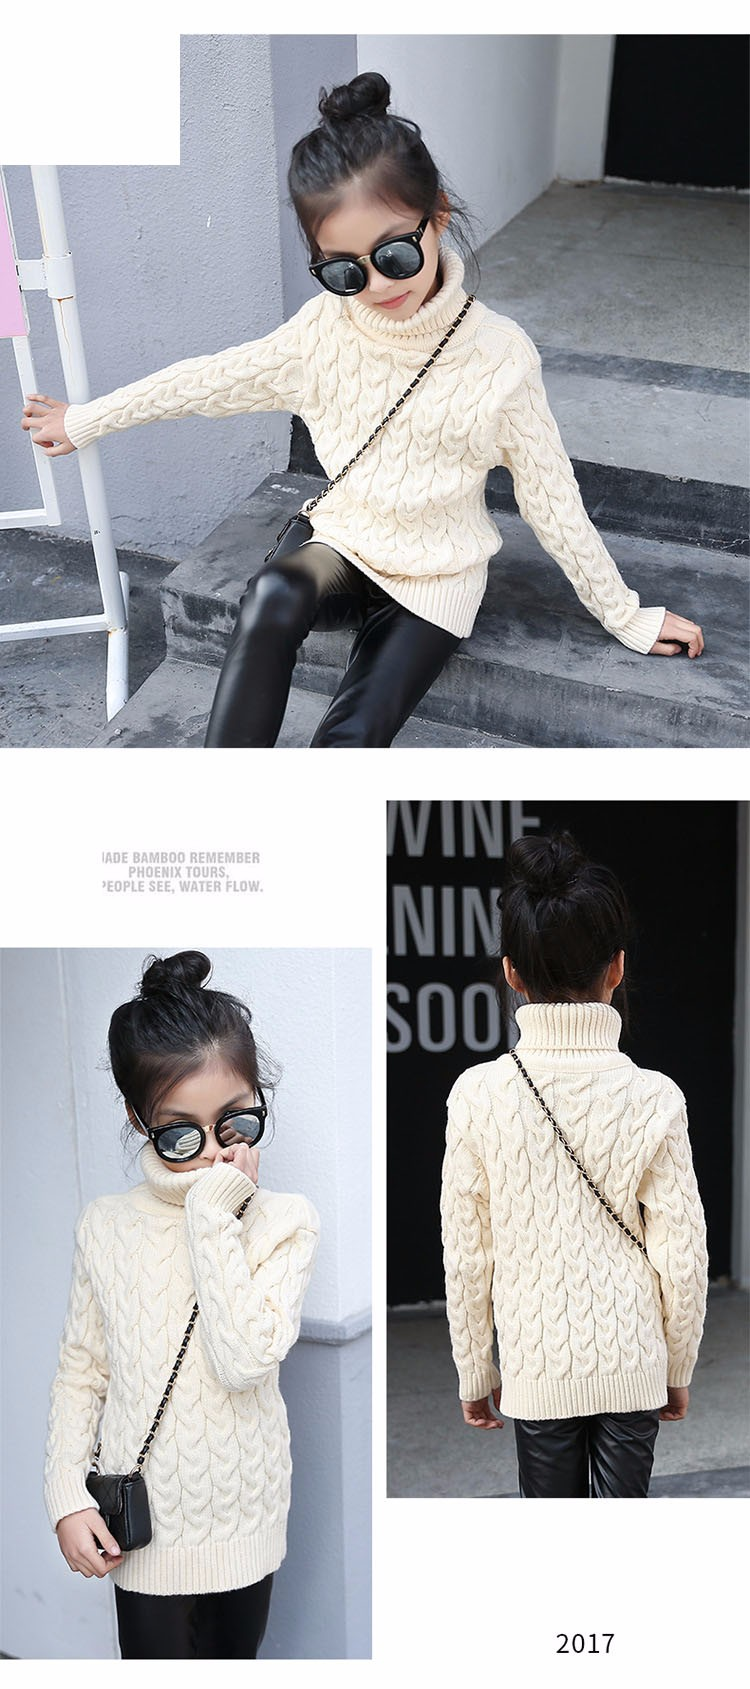 2017 new high neck long knitting girls sweater spring autumn winter turtleneck knitted children sweaters kids girls thick red black beige pink tops 7 8 9 10 11 12 13 14 15 years little big teenage girls sweater winter casual children (8)